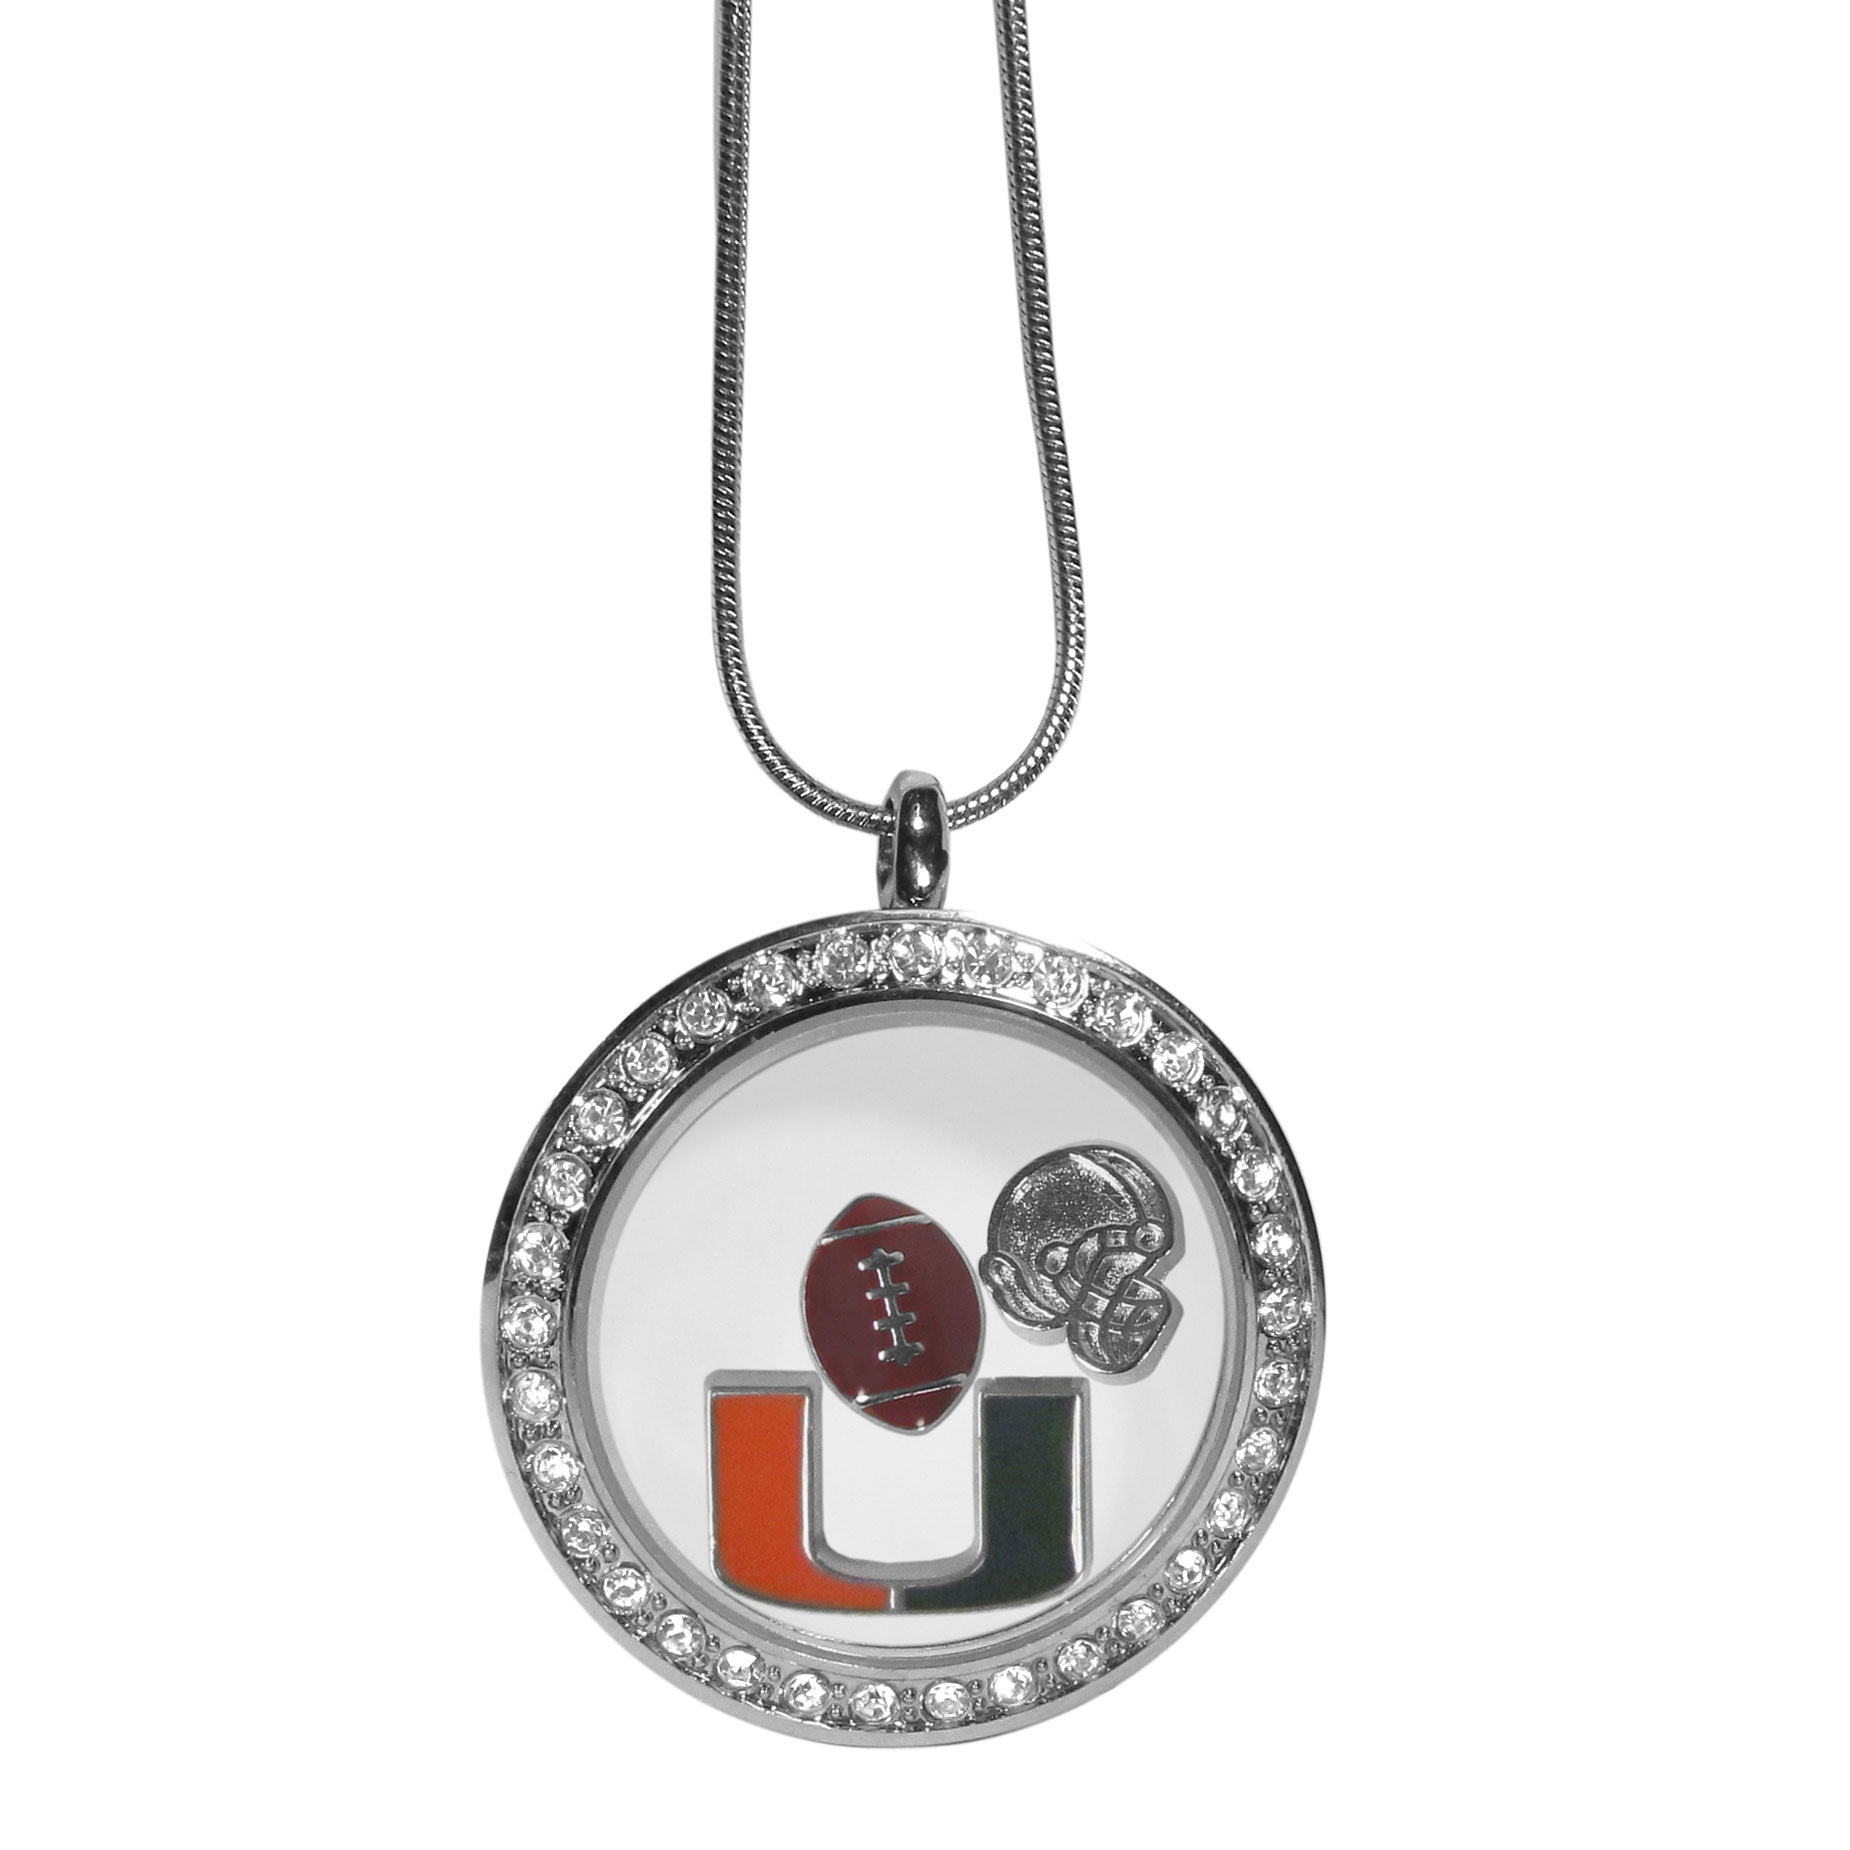 Miami Hurricanes Locket Necklace - We have taken the classic floating charm locket and combined with licensed sports charms to create a must have fan necklace. The necklace comes with 3 charms; 1 Miami Hurricanes charm, one football charm and one helmet charm. The charms float in a beautiful locket that has a strong magnetic closure with a rhinestone border. The locket comes on an 18 inch snake chain with 2 inch extender.